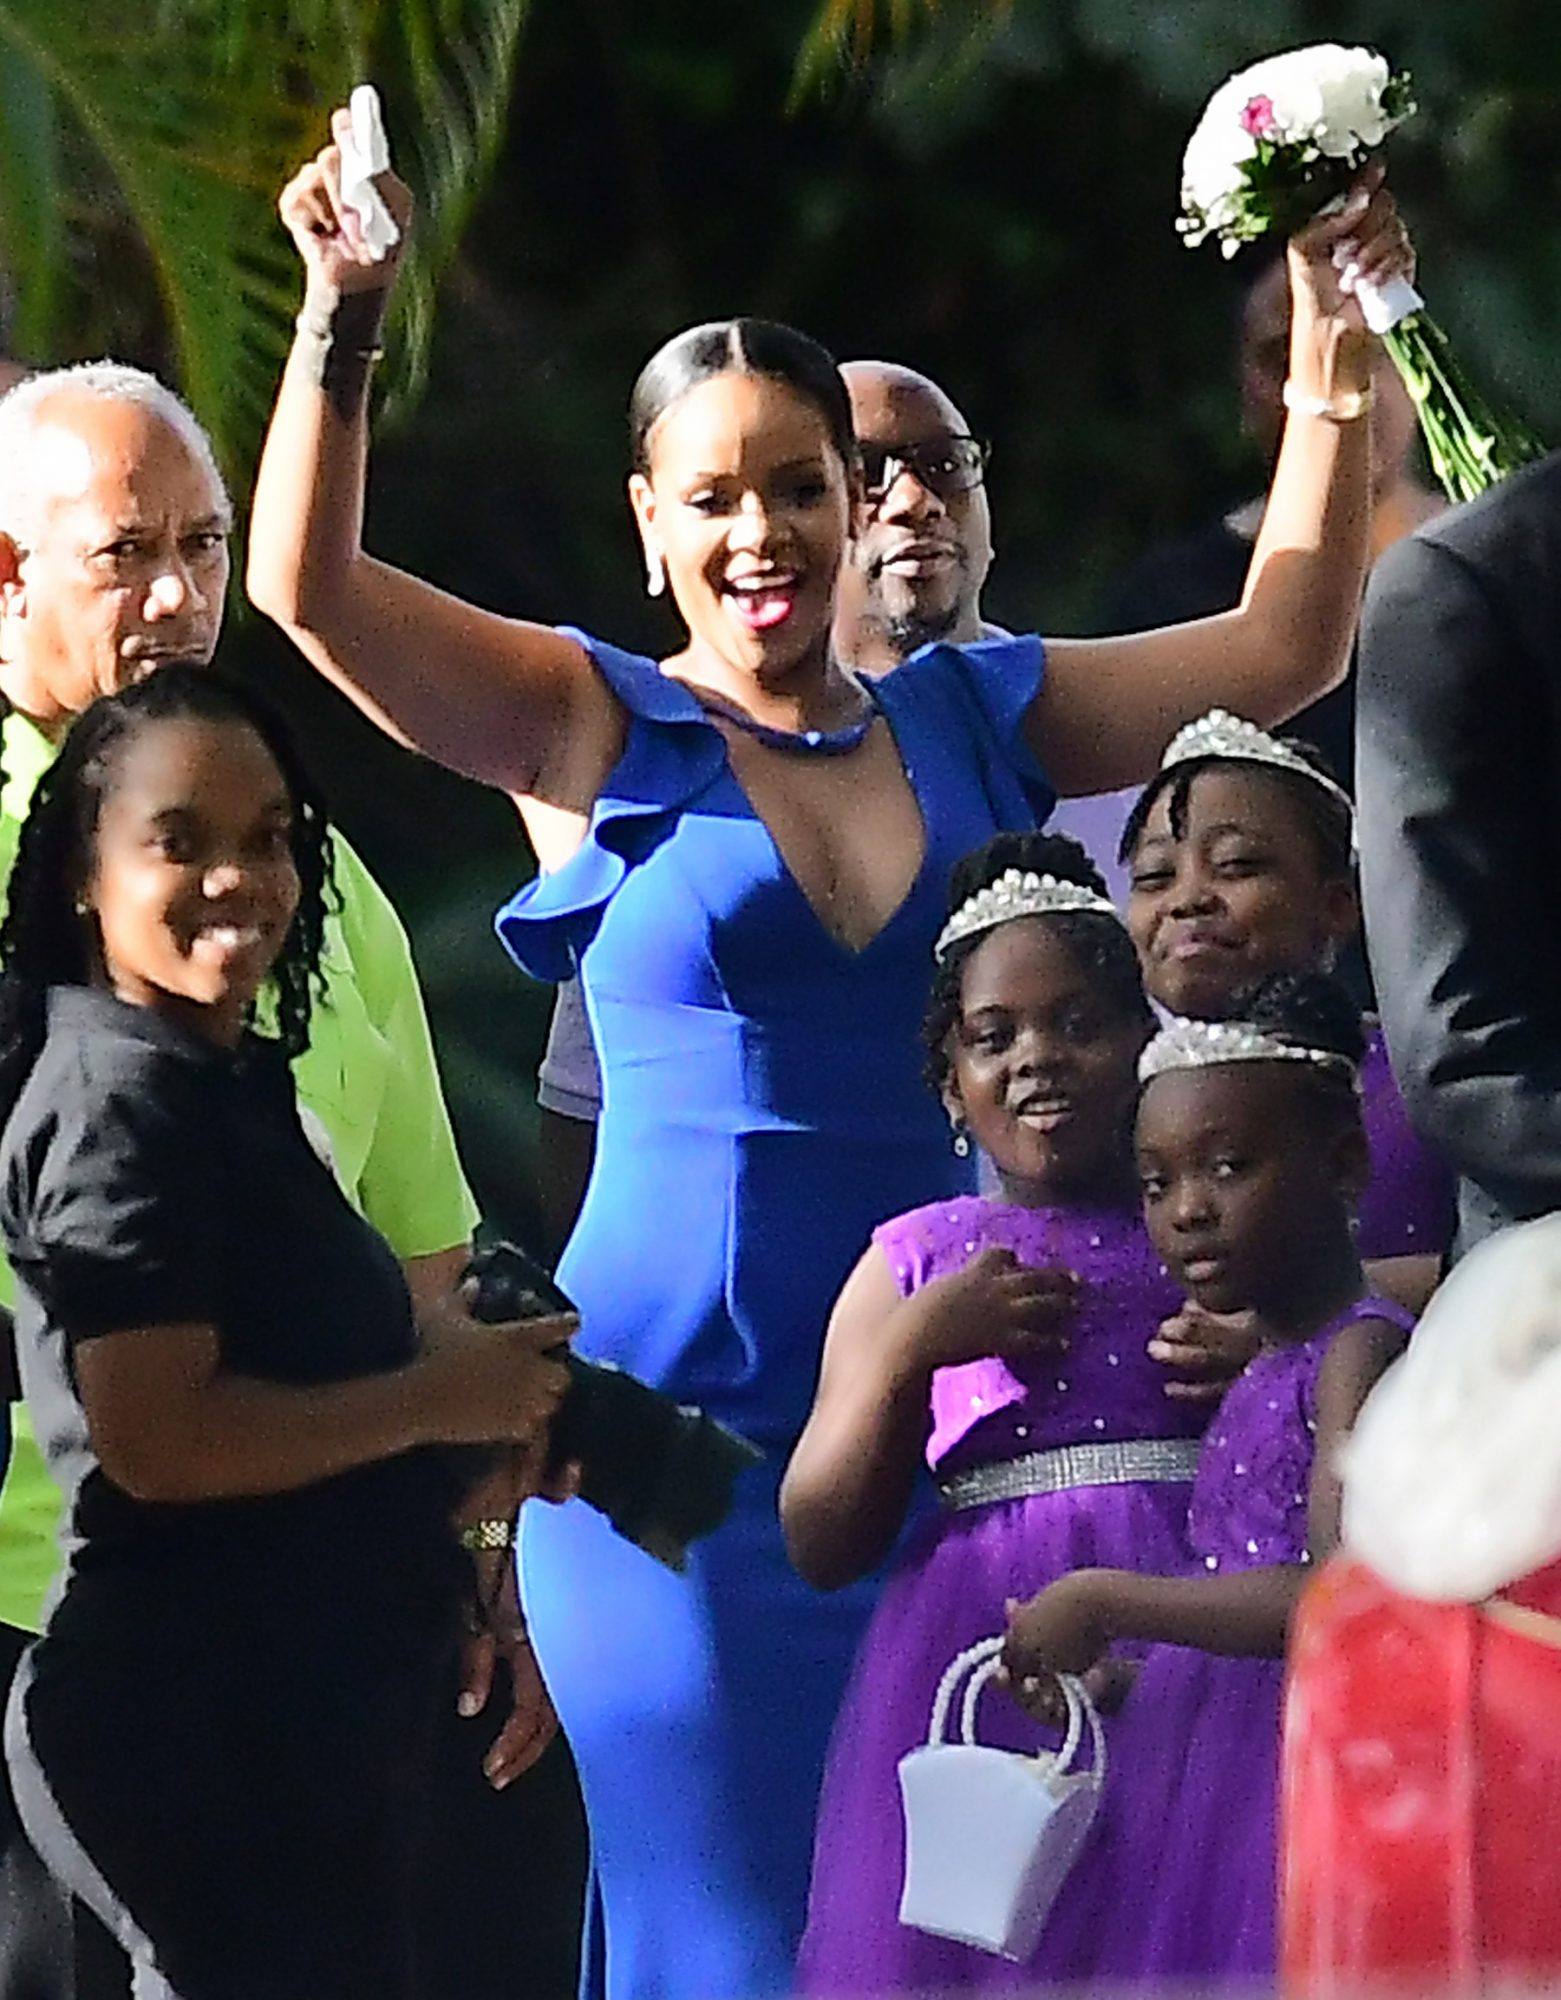 EXCLUSIVE: Rihanna stuns at her best friend's wedding in Barbados